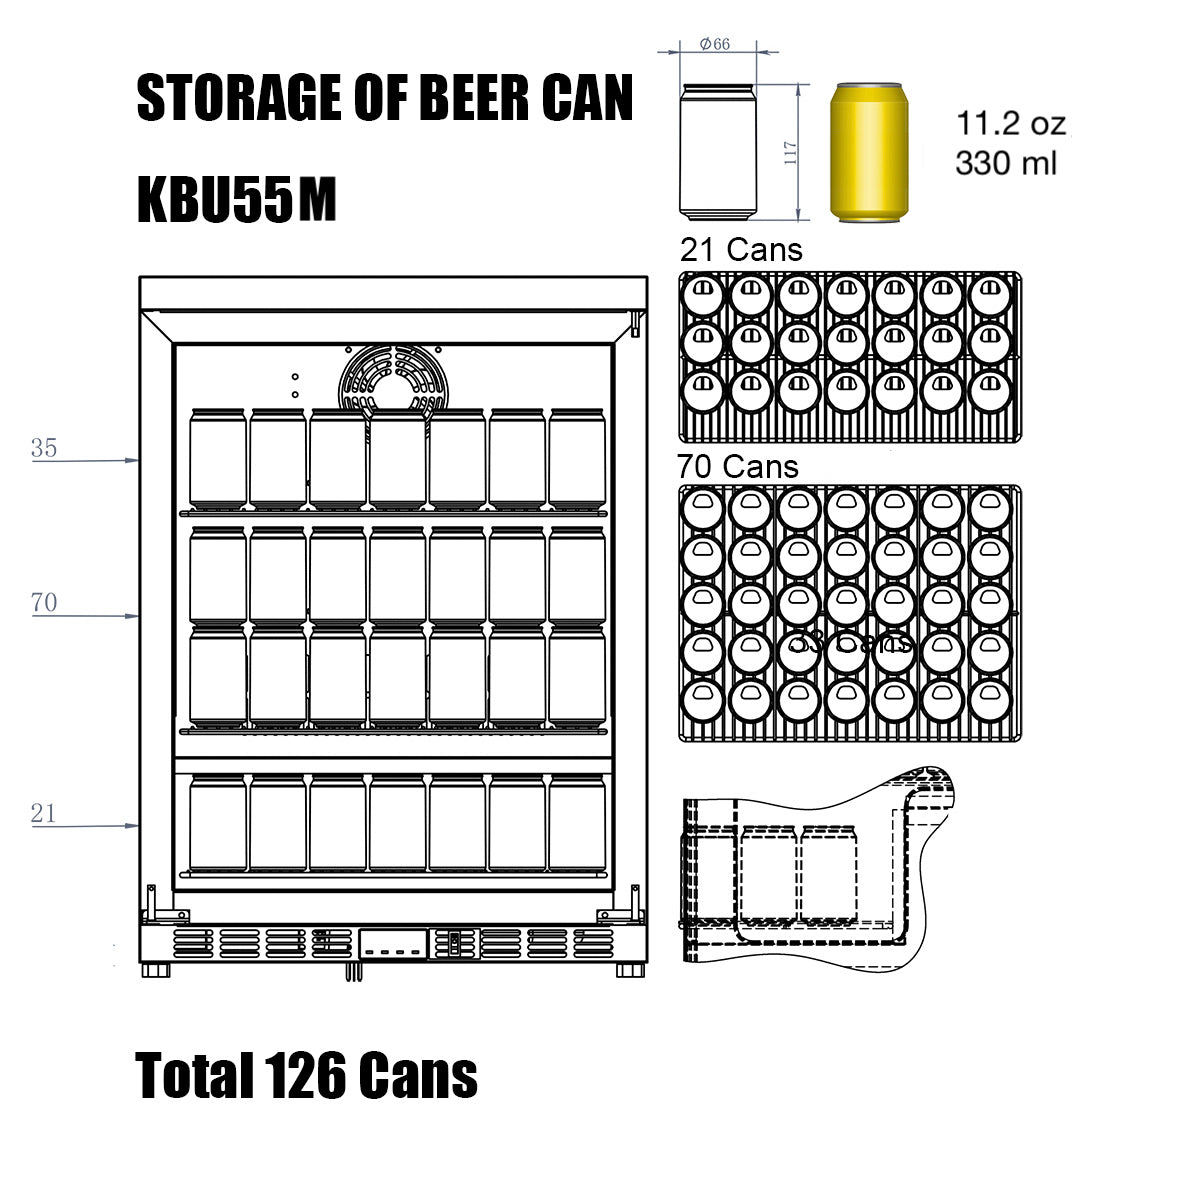 KBU50M Storage of Beer Can